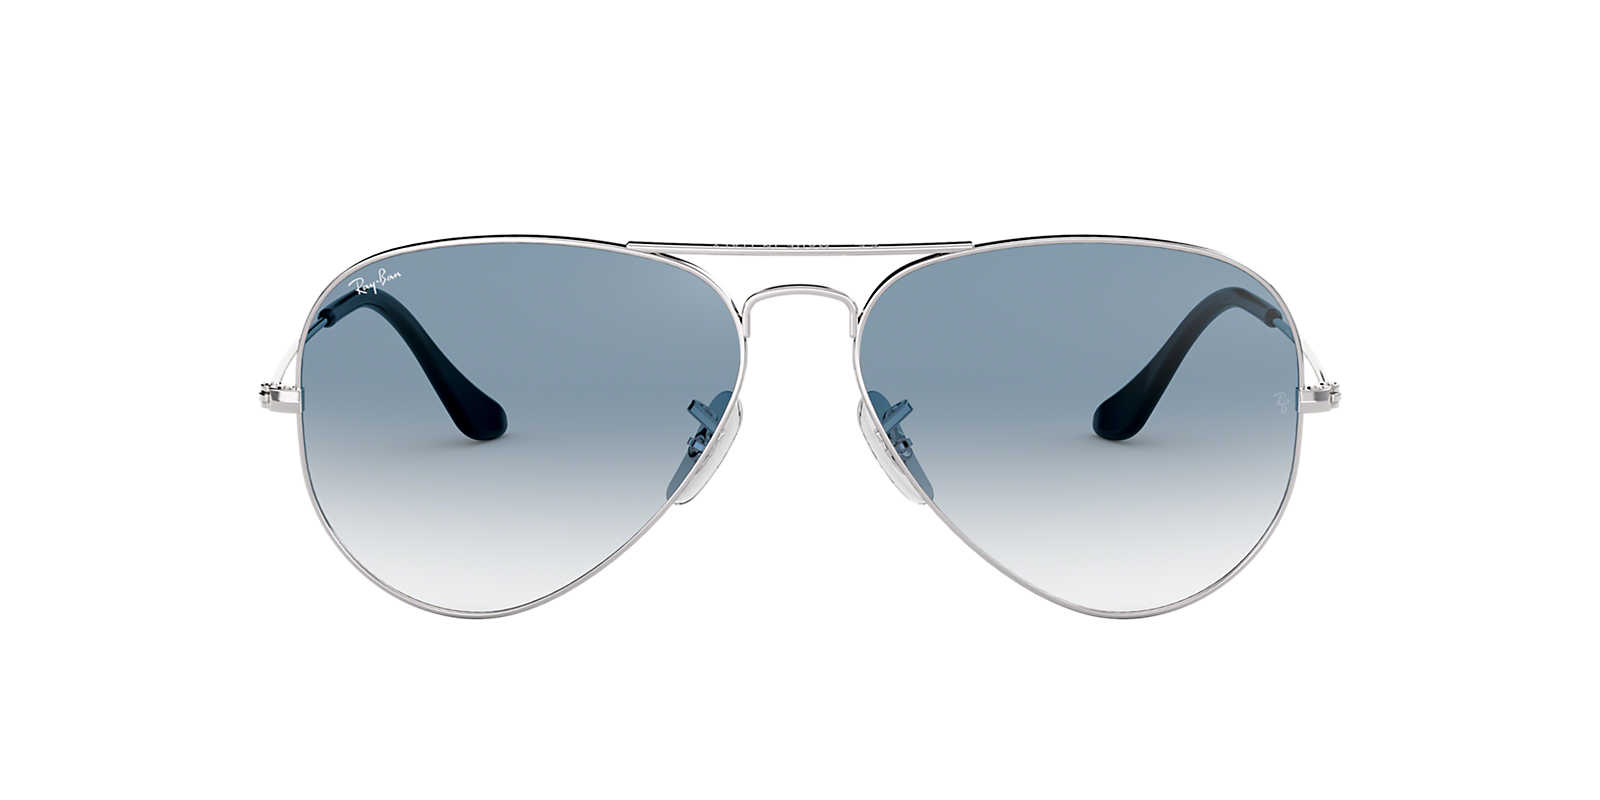 original aviators  Ray-Ban RB3025 62 ORIGINAL AVIATOR 62 Blue \u0026 Silver Sunglasses ...